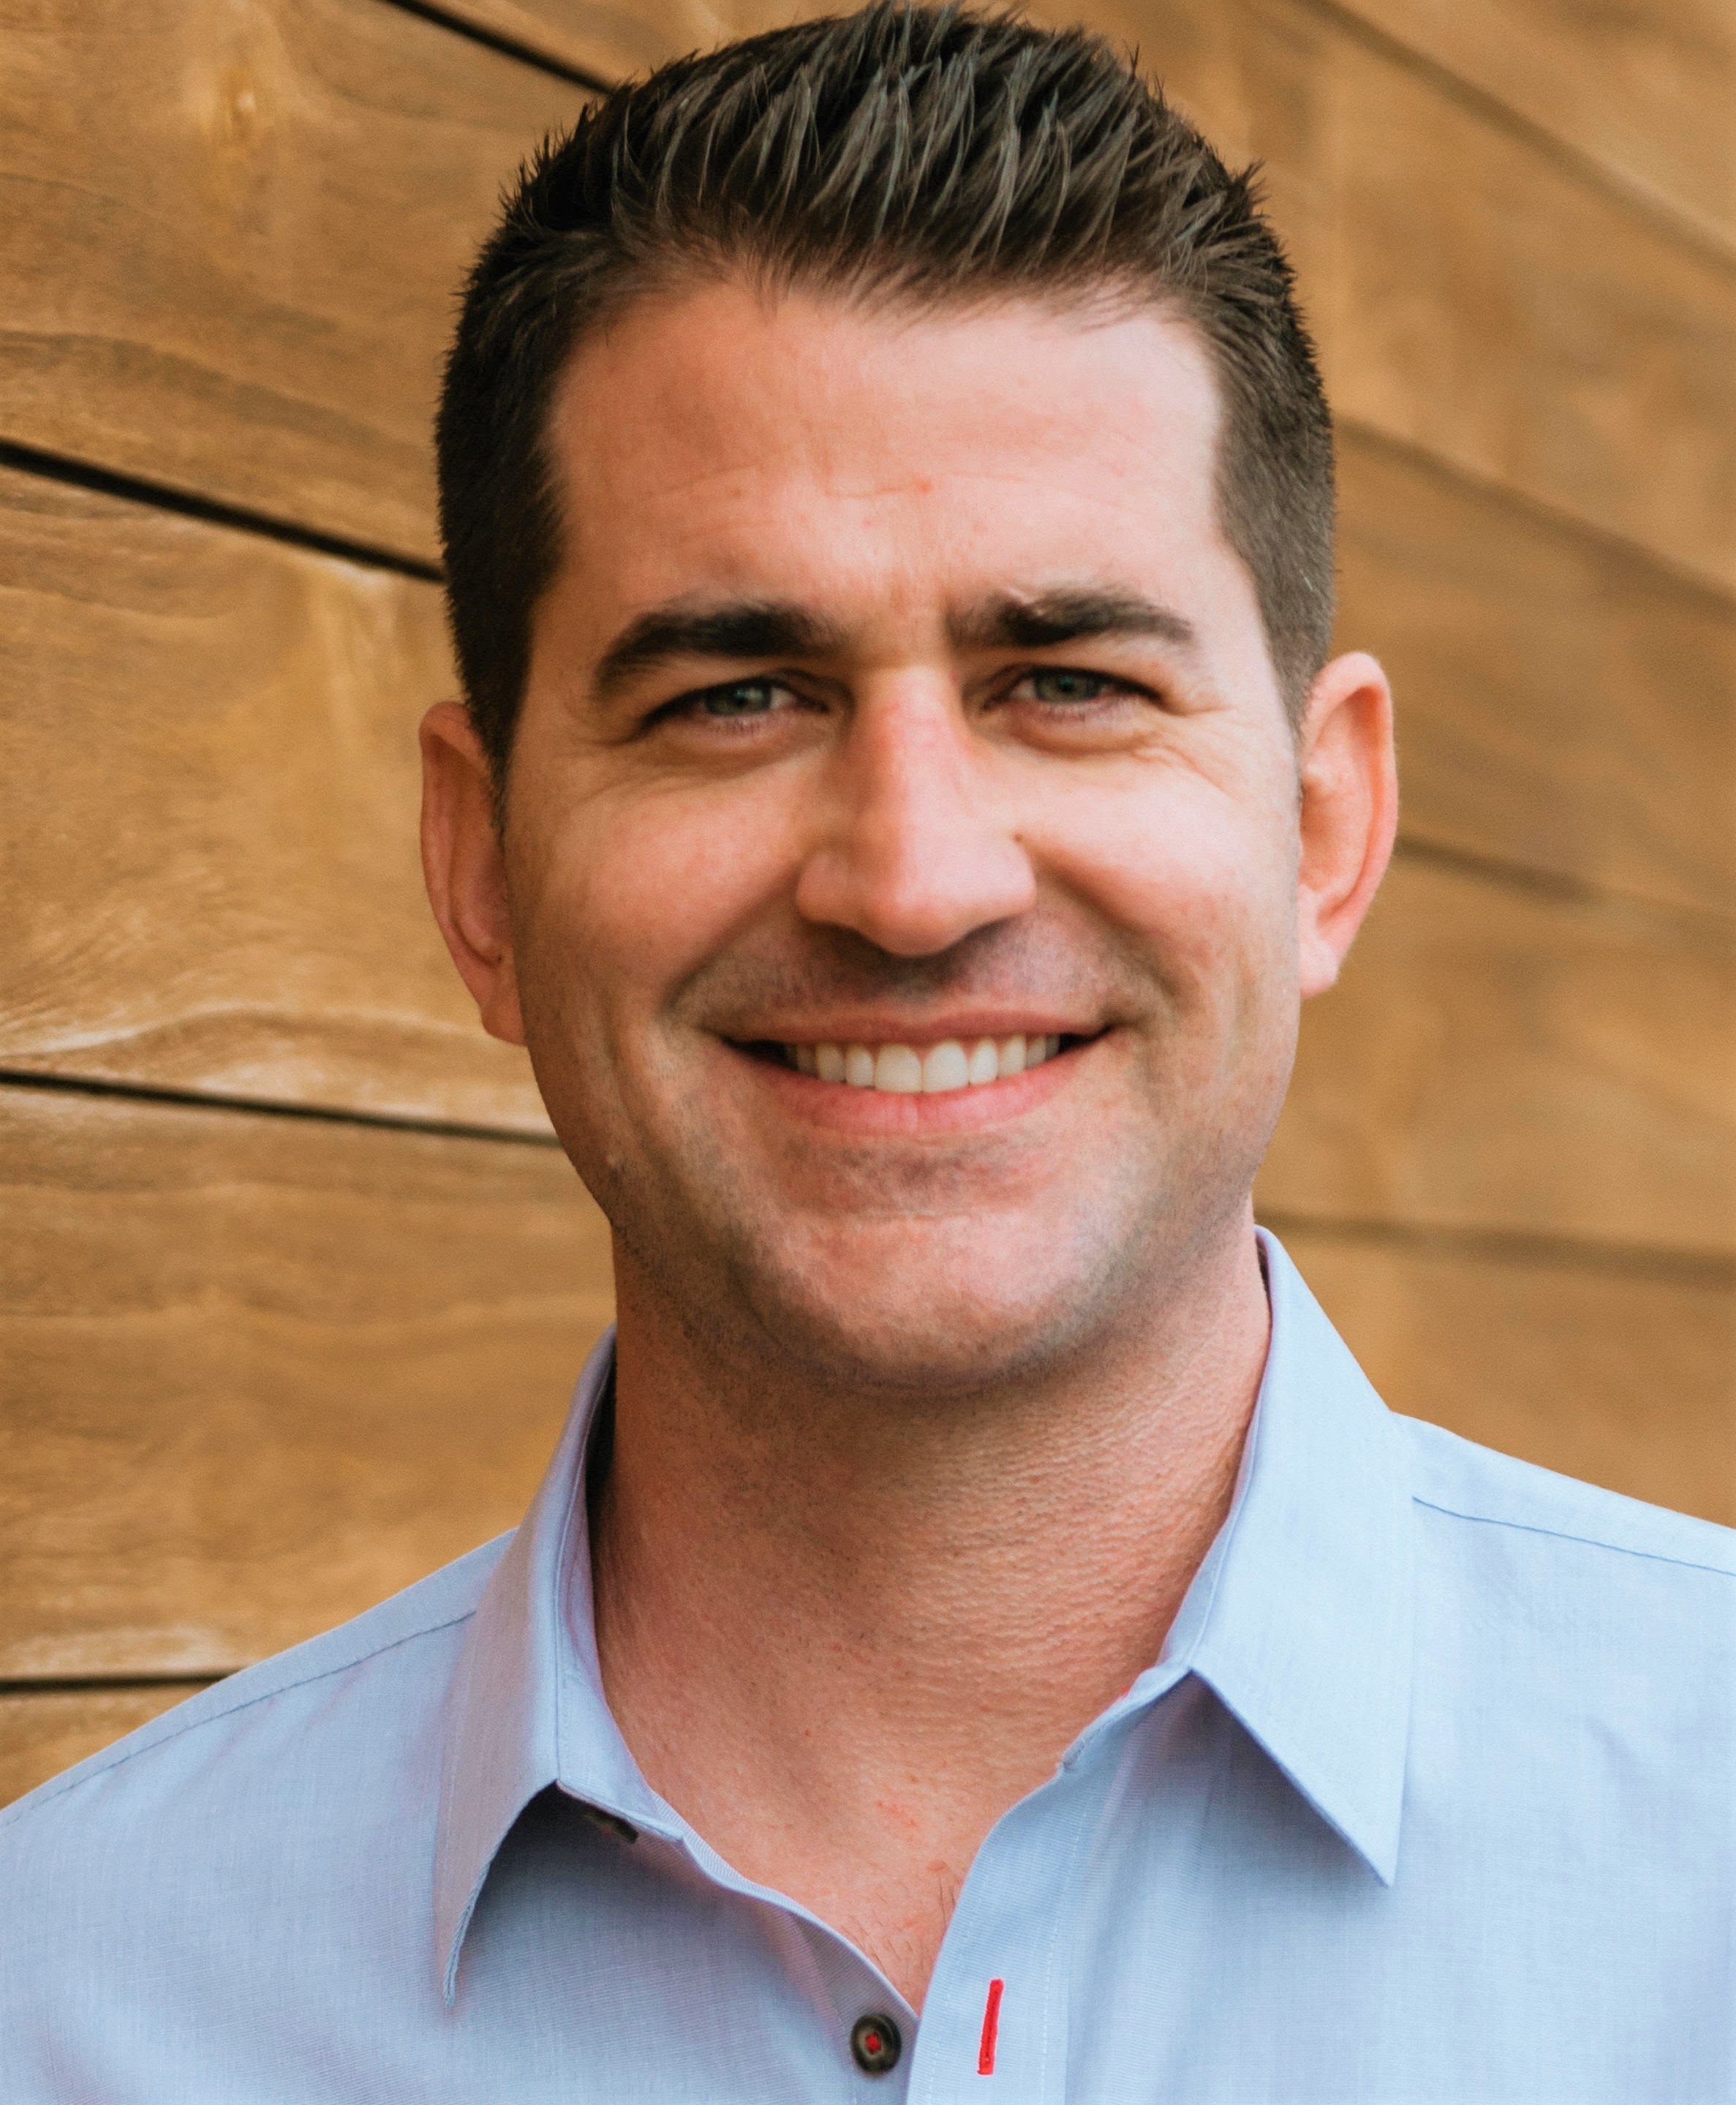 Dan Poirier COO and Founder